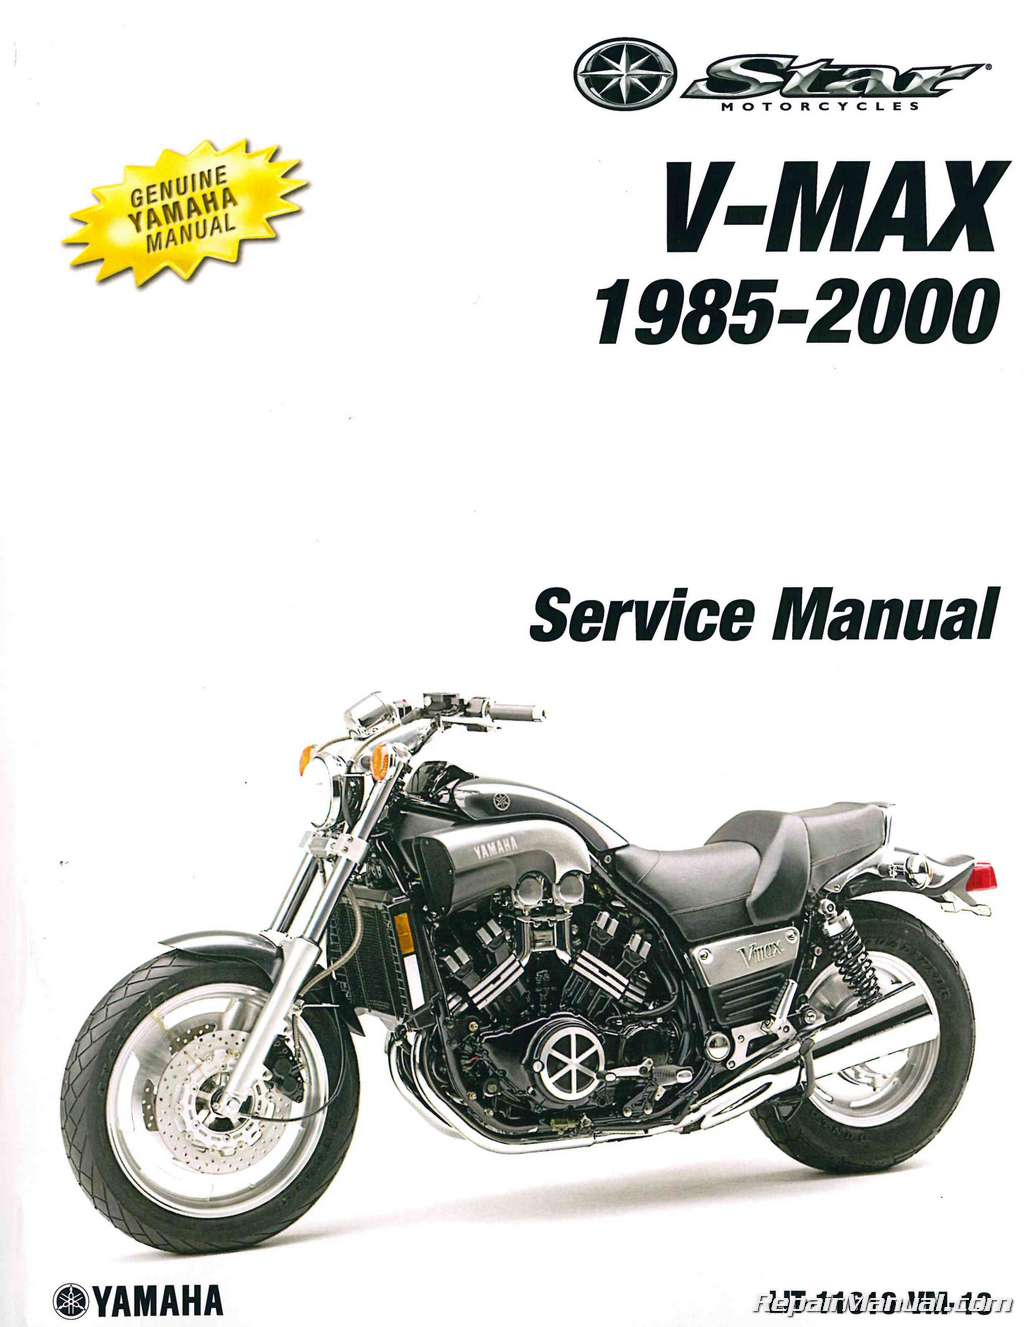 1985-2000-Yamaha-VMX1200-VMAX-Service-Manual Yamaha Golf Cart Wiring Diagram For on g29 gas, g14e, for 36 volt, g2a, for g16, g16a gas, solid state controller, g9 horsepower, drive electric,